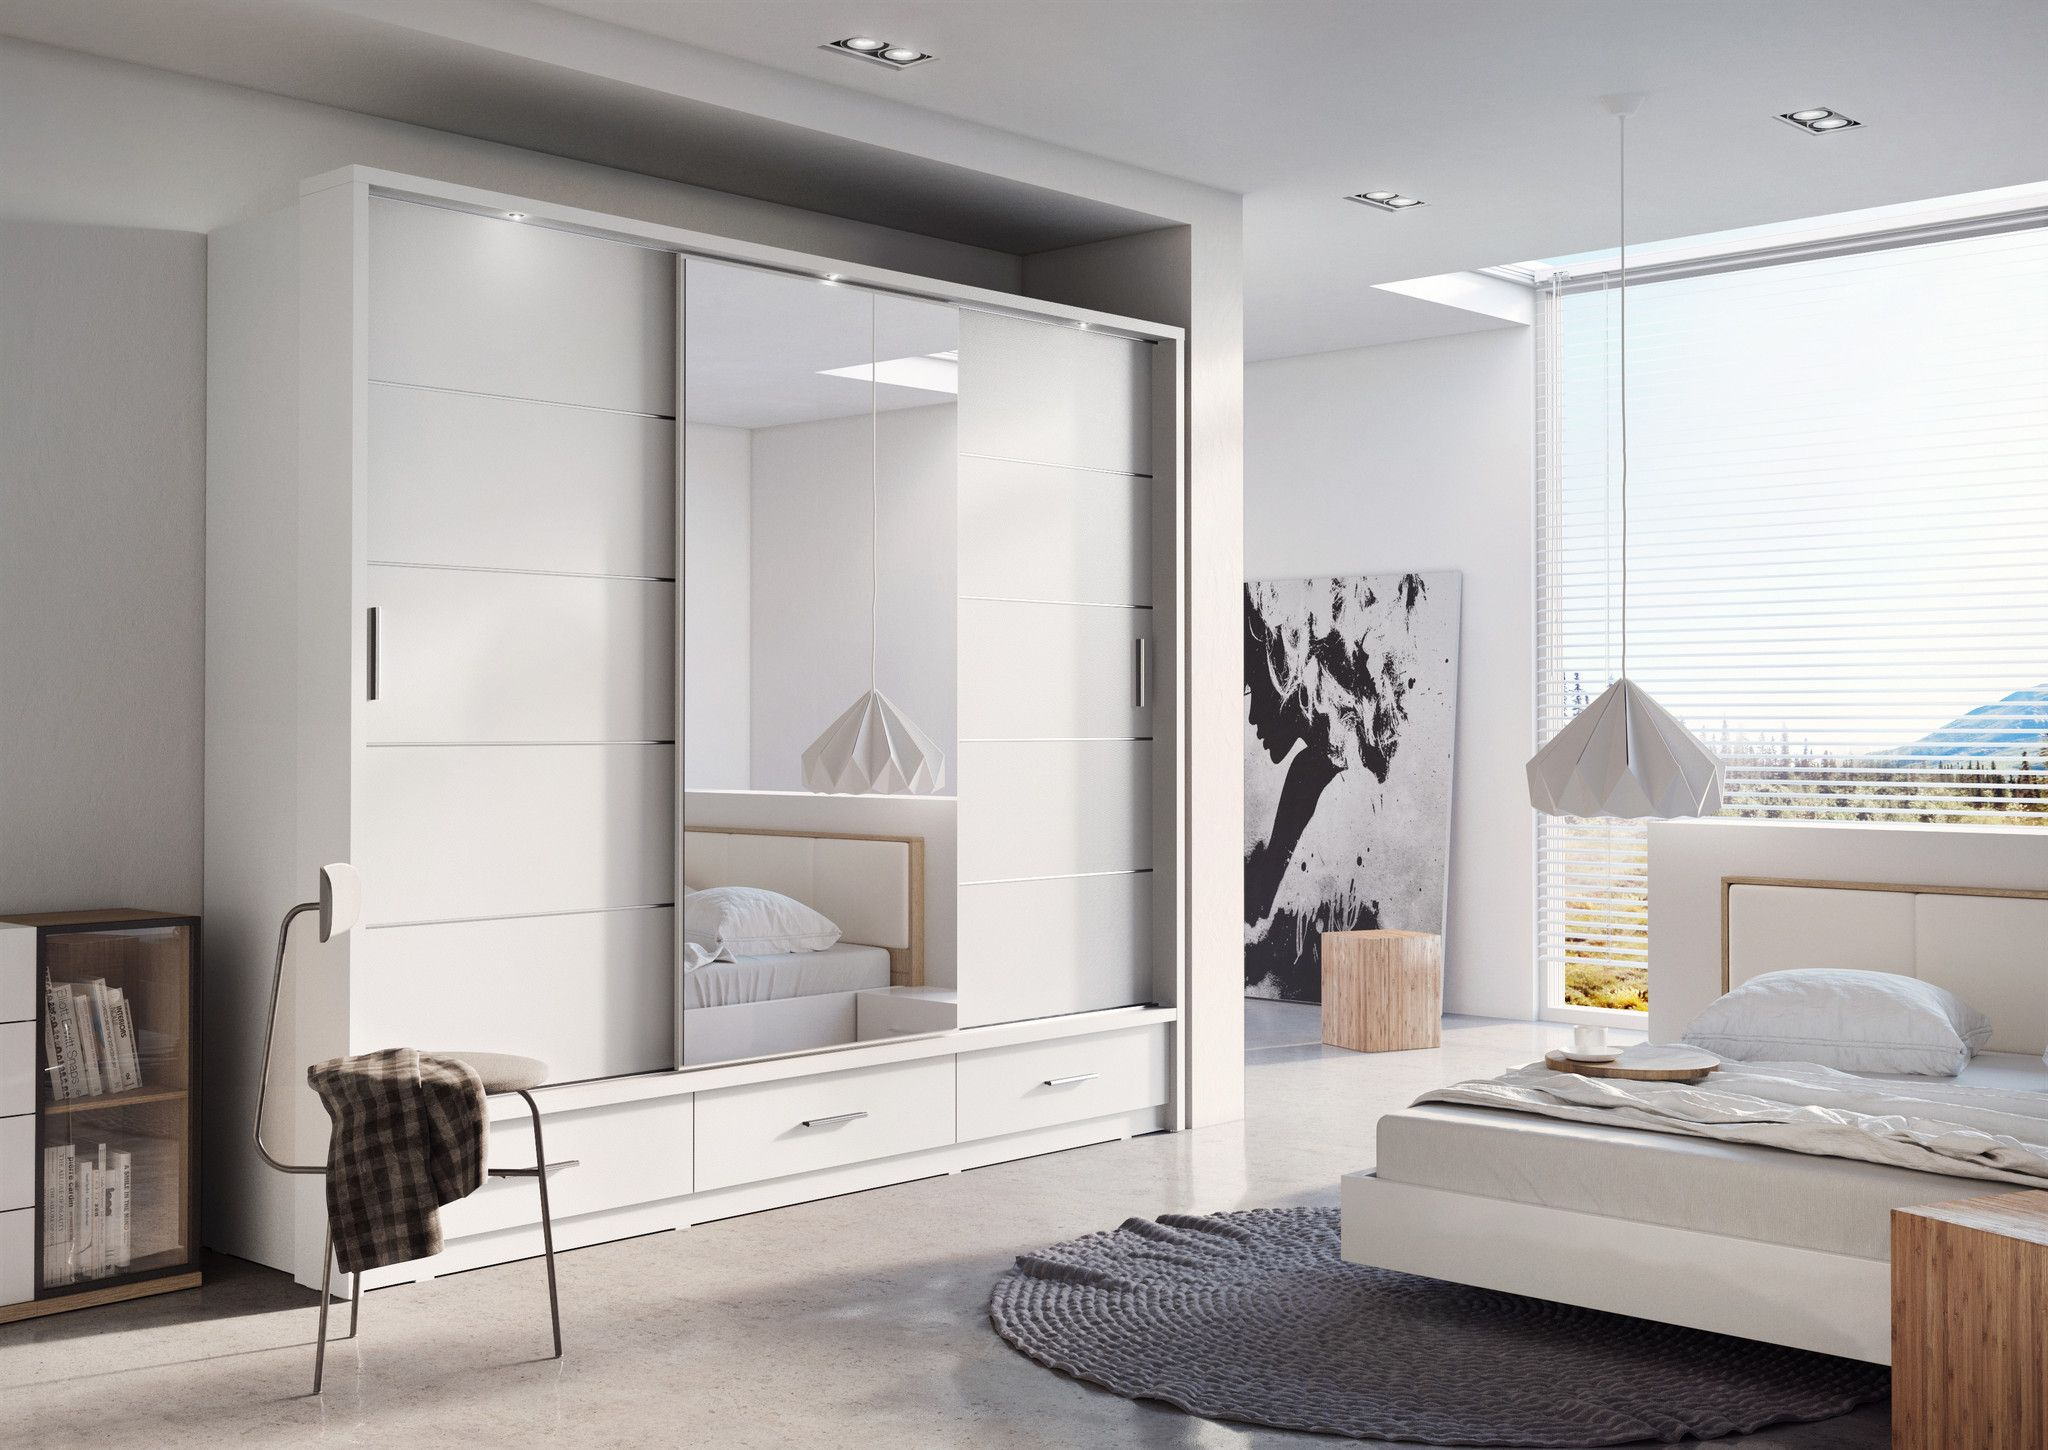 Where Space Is Limited And Appearance Is Essential, Sliding Door